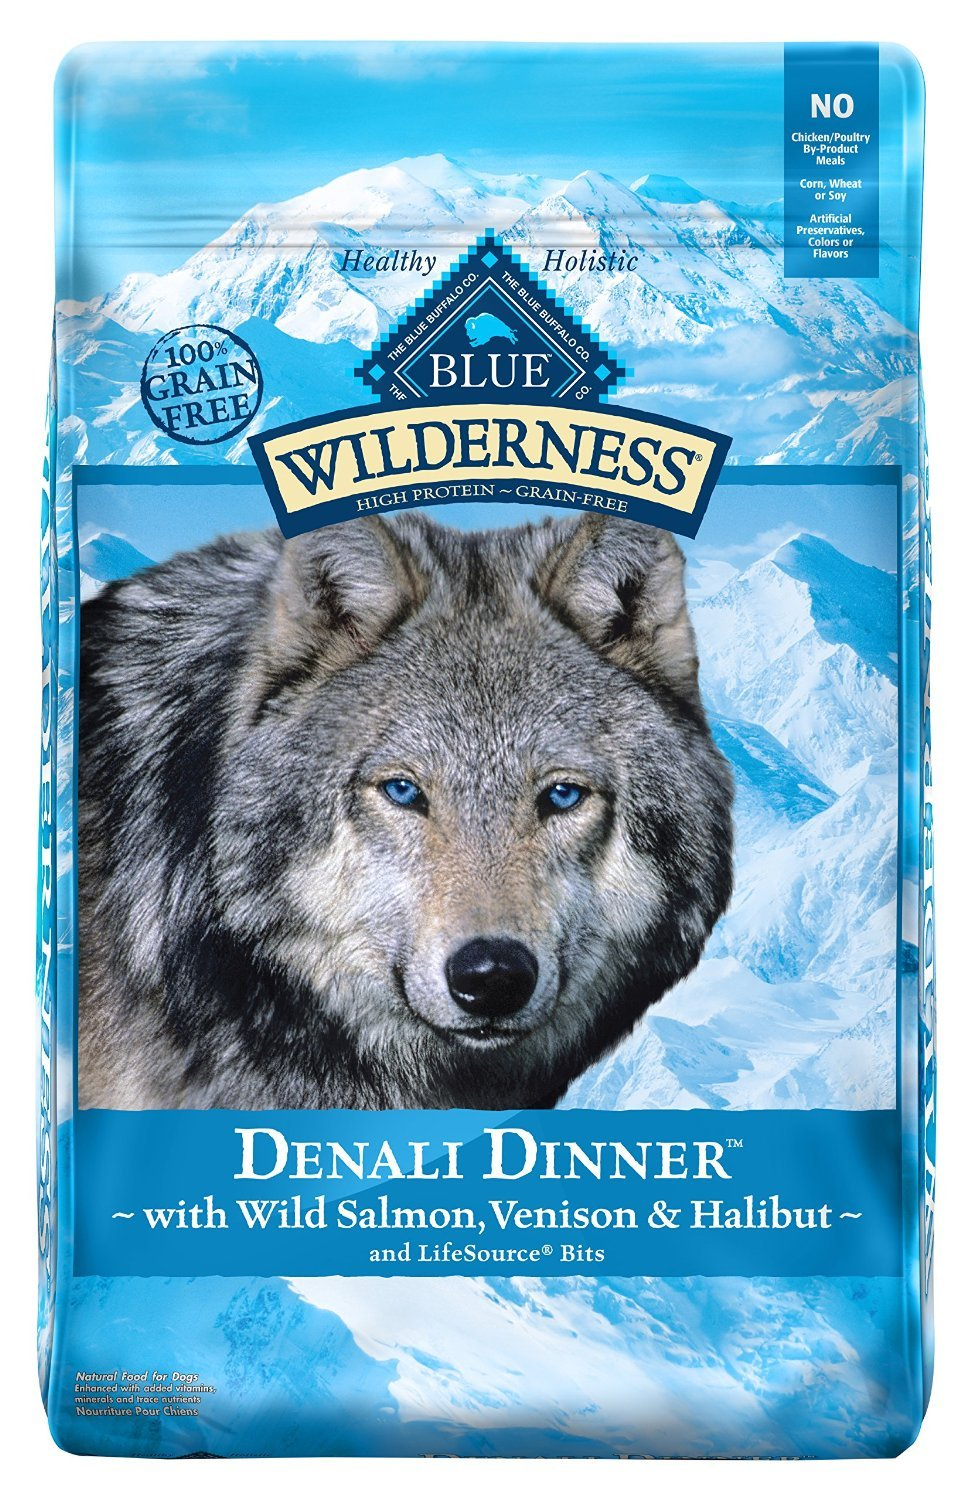 22 LB, Protein-Rich, Grain-Free Denali Dinner Adult Dog Food by BLUE Wilderness by BLUE Wilderness (Image #1)